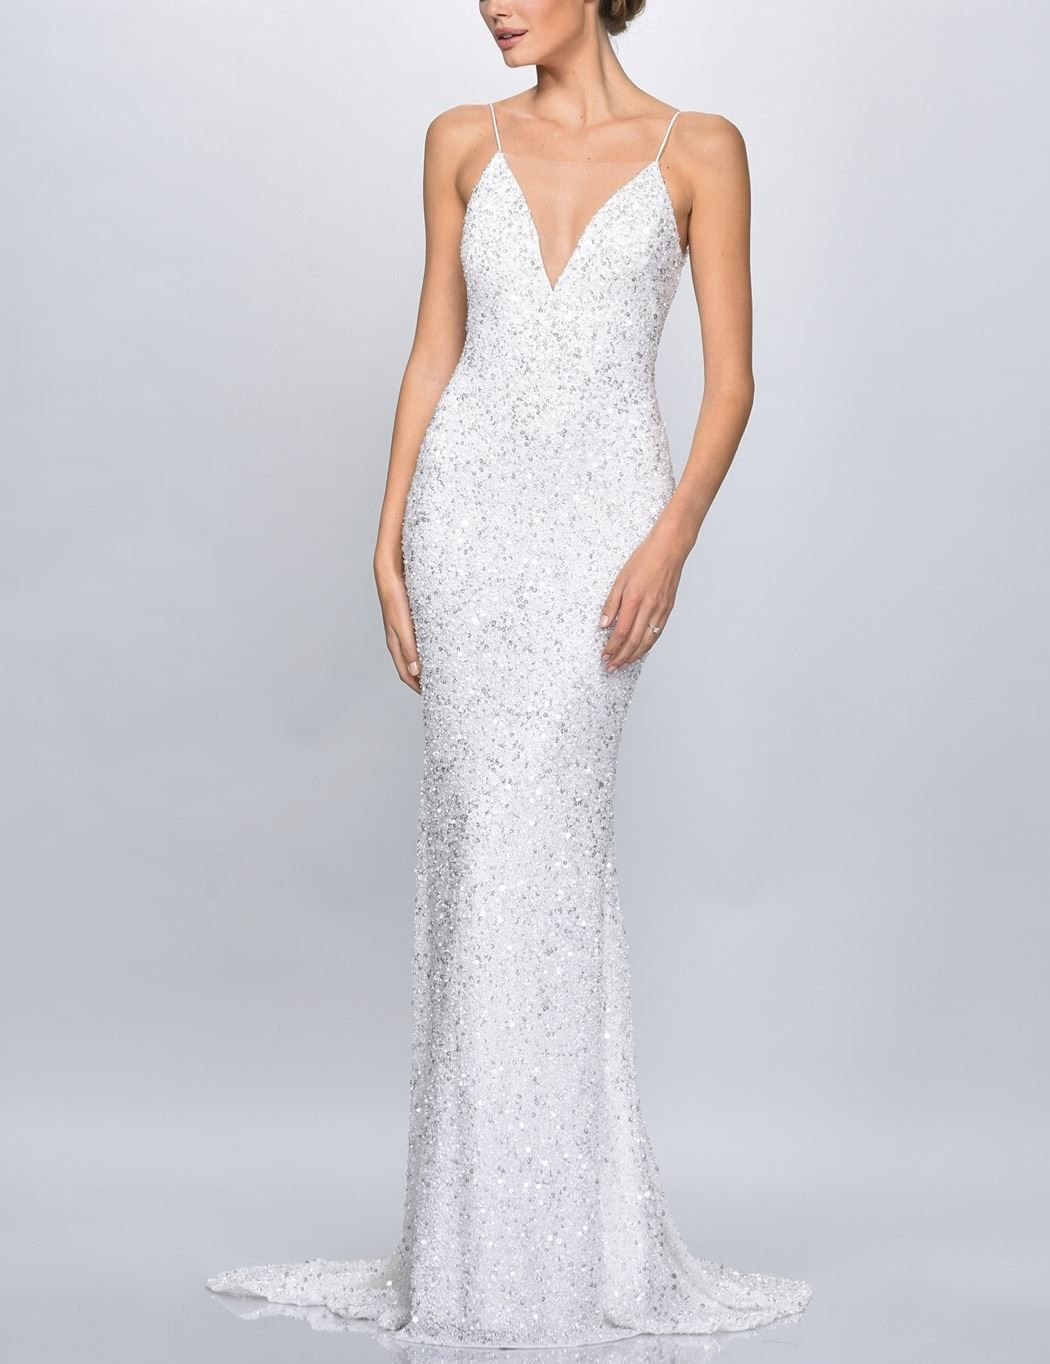 Theia Couture Astor Sparkle V Neck Wedding Gown At Lovely Bride Glitter Wedding Dress Pretty Prom Dresses Wedding Dress Sequin [ 1364 x 1050 Pixel ]